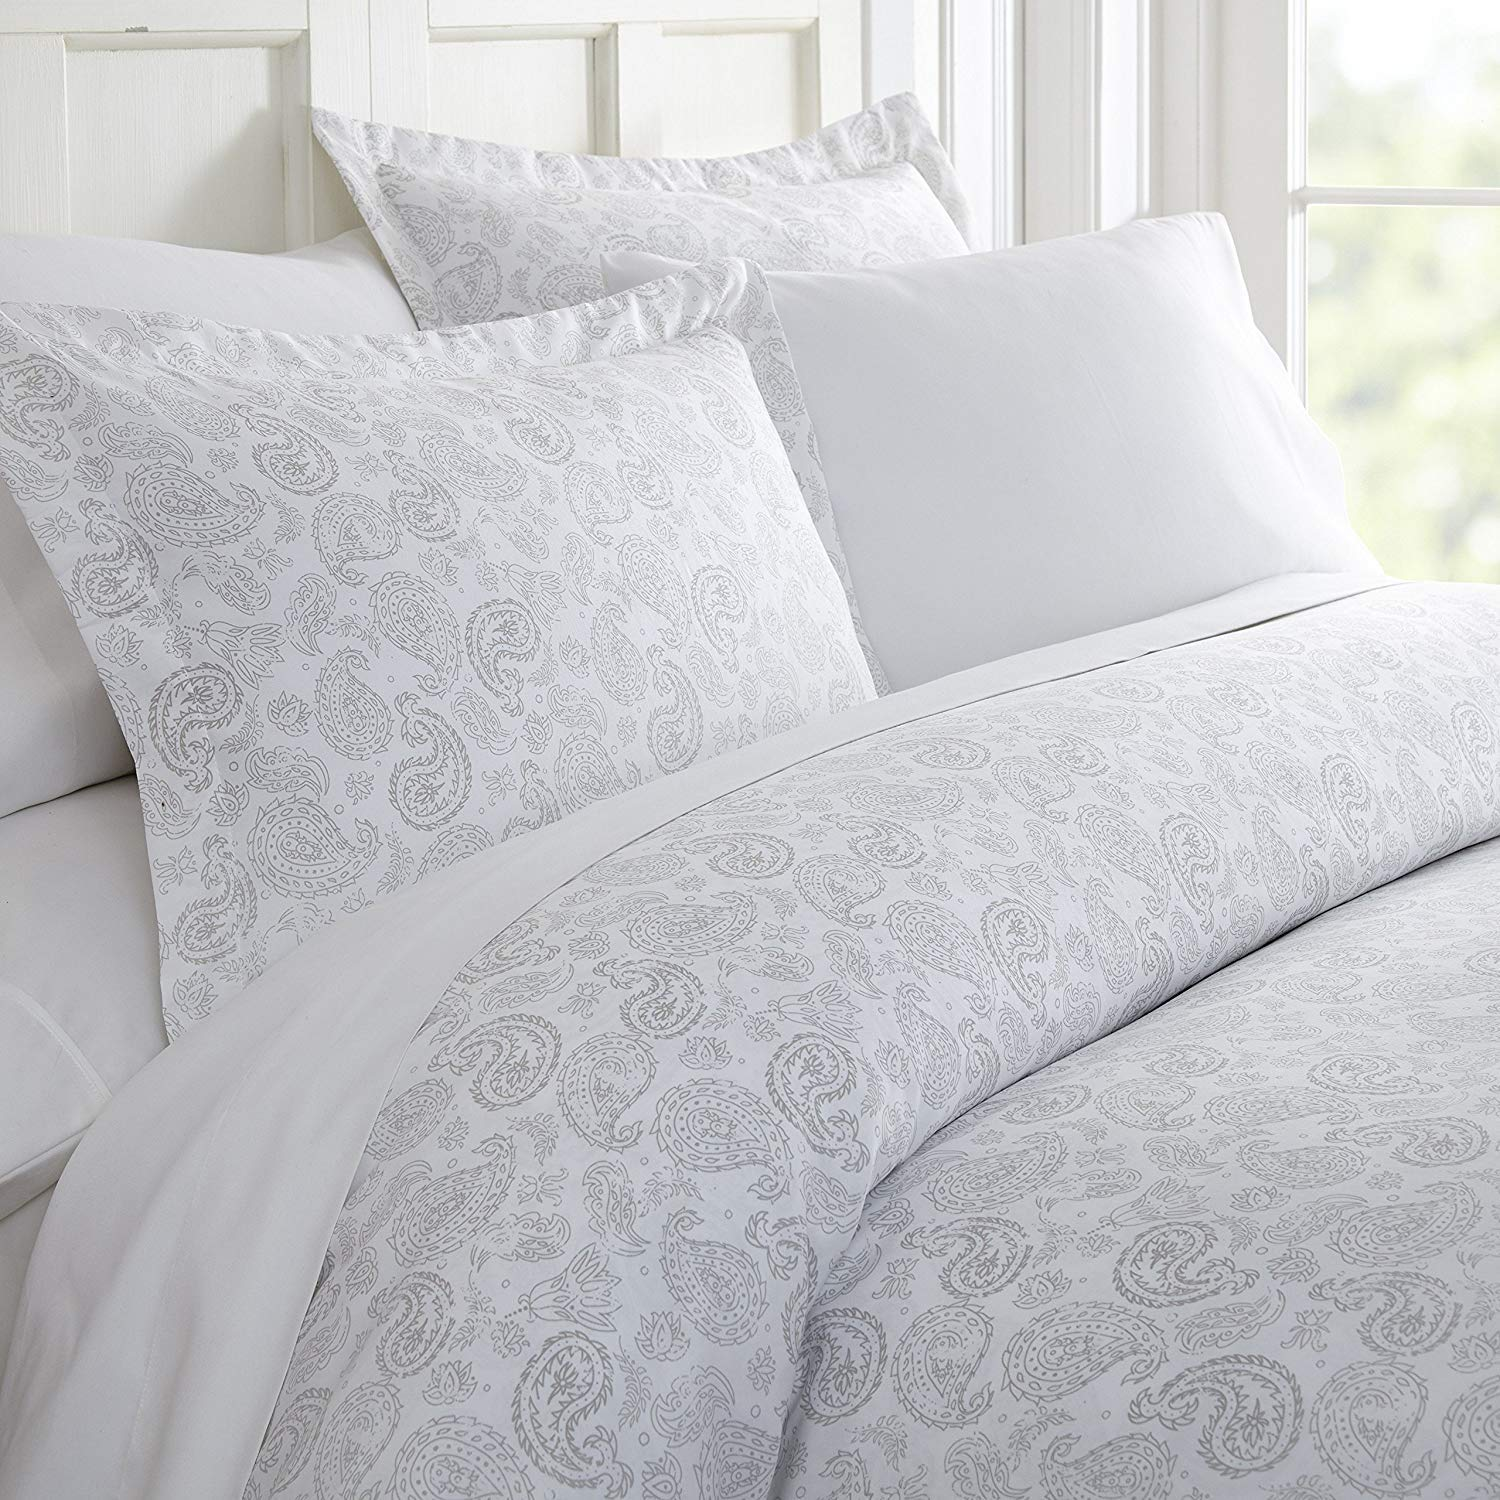 Celine Linen Luxury Silky Soft Coziest 1500 Thread Count Egyptian Quality 3-Piece Duvet Cover Set |Coarse Paisley Pattern| Wrinkle Free, 100% Hypoallergenic, King/California King, Light Grey